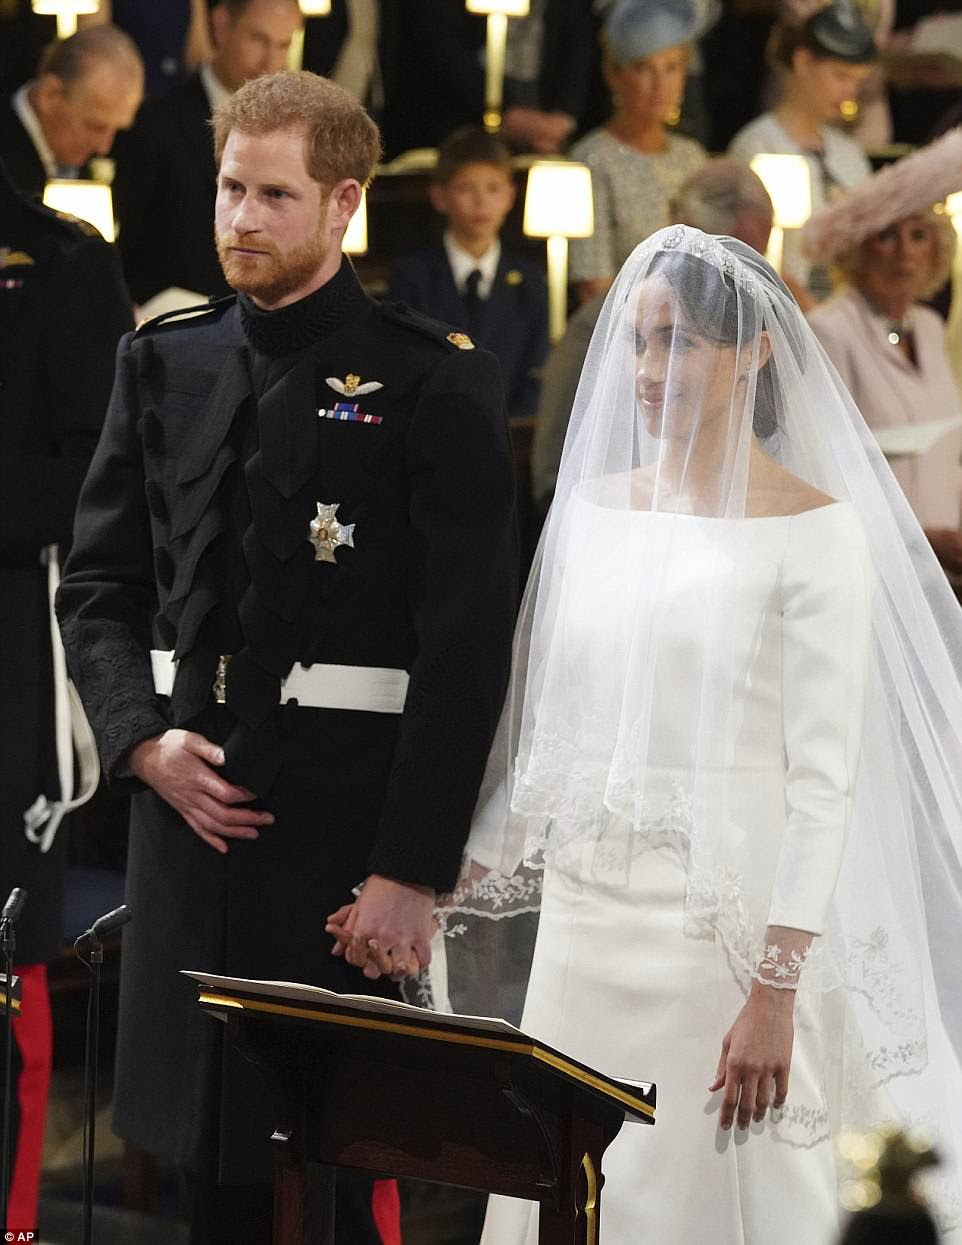 Harry no soltó las manos de su nueva esposa durante la emotiva ceremonia en Windsor